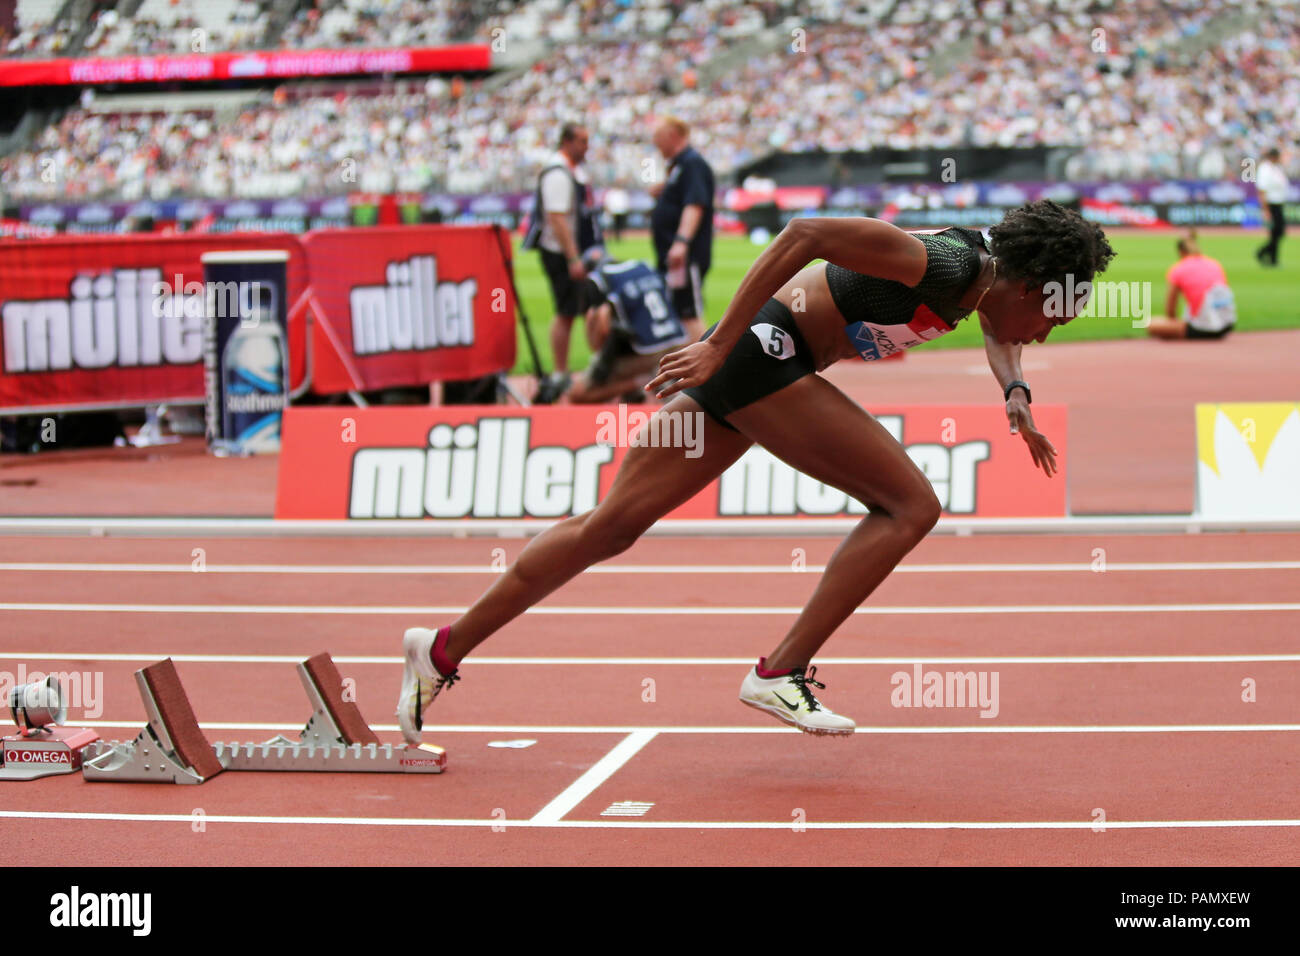 Stephenie Ann MCPHERSON (Jamaica) out of the starting blocks in the Women's 400m at the 2018, IAAF Diamond League, Olympic Park, Stratford, London, UK - Stock Image